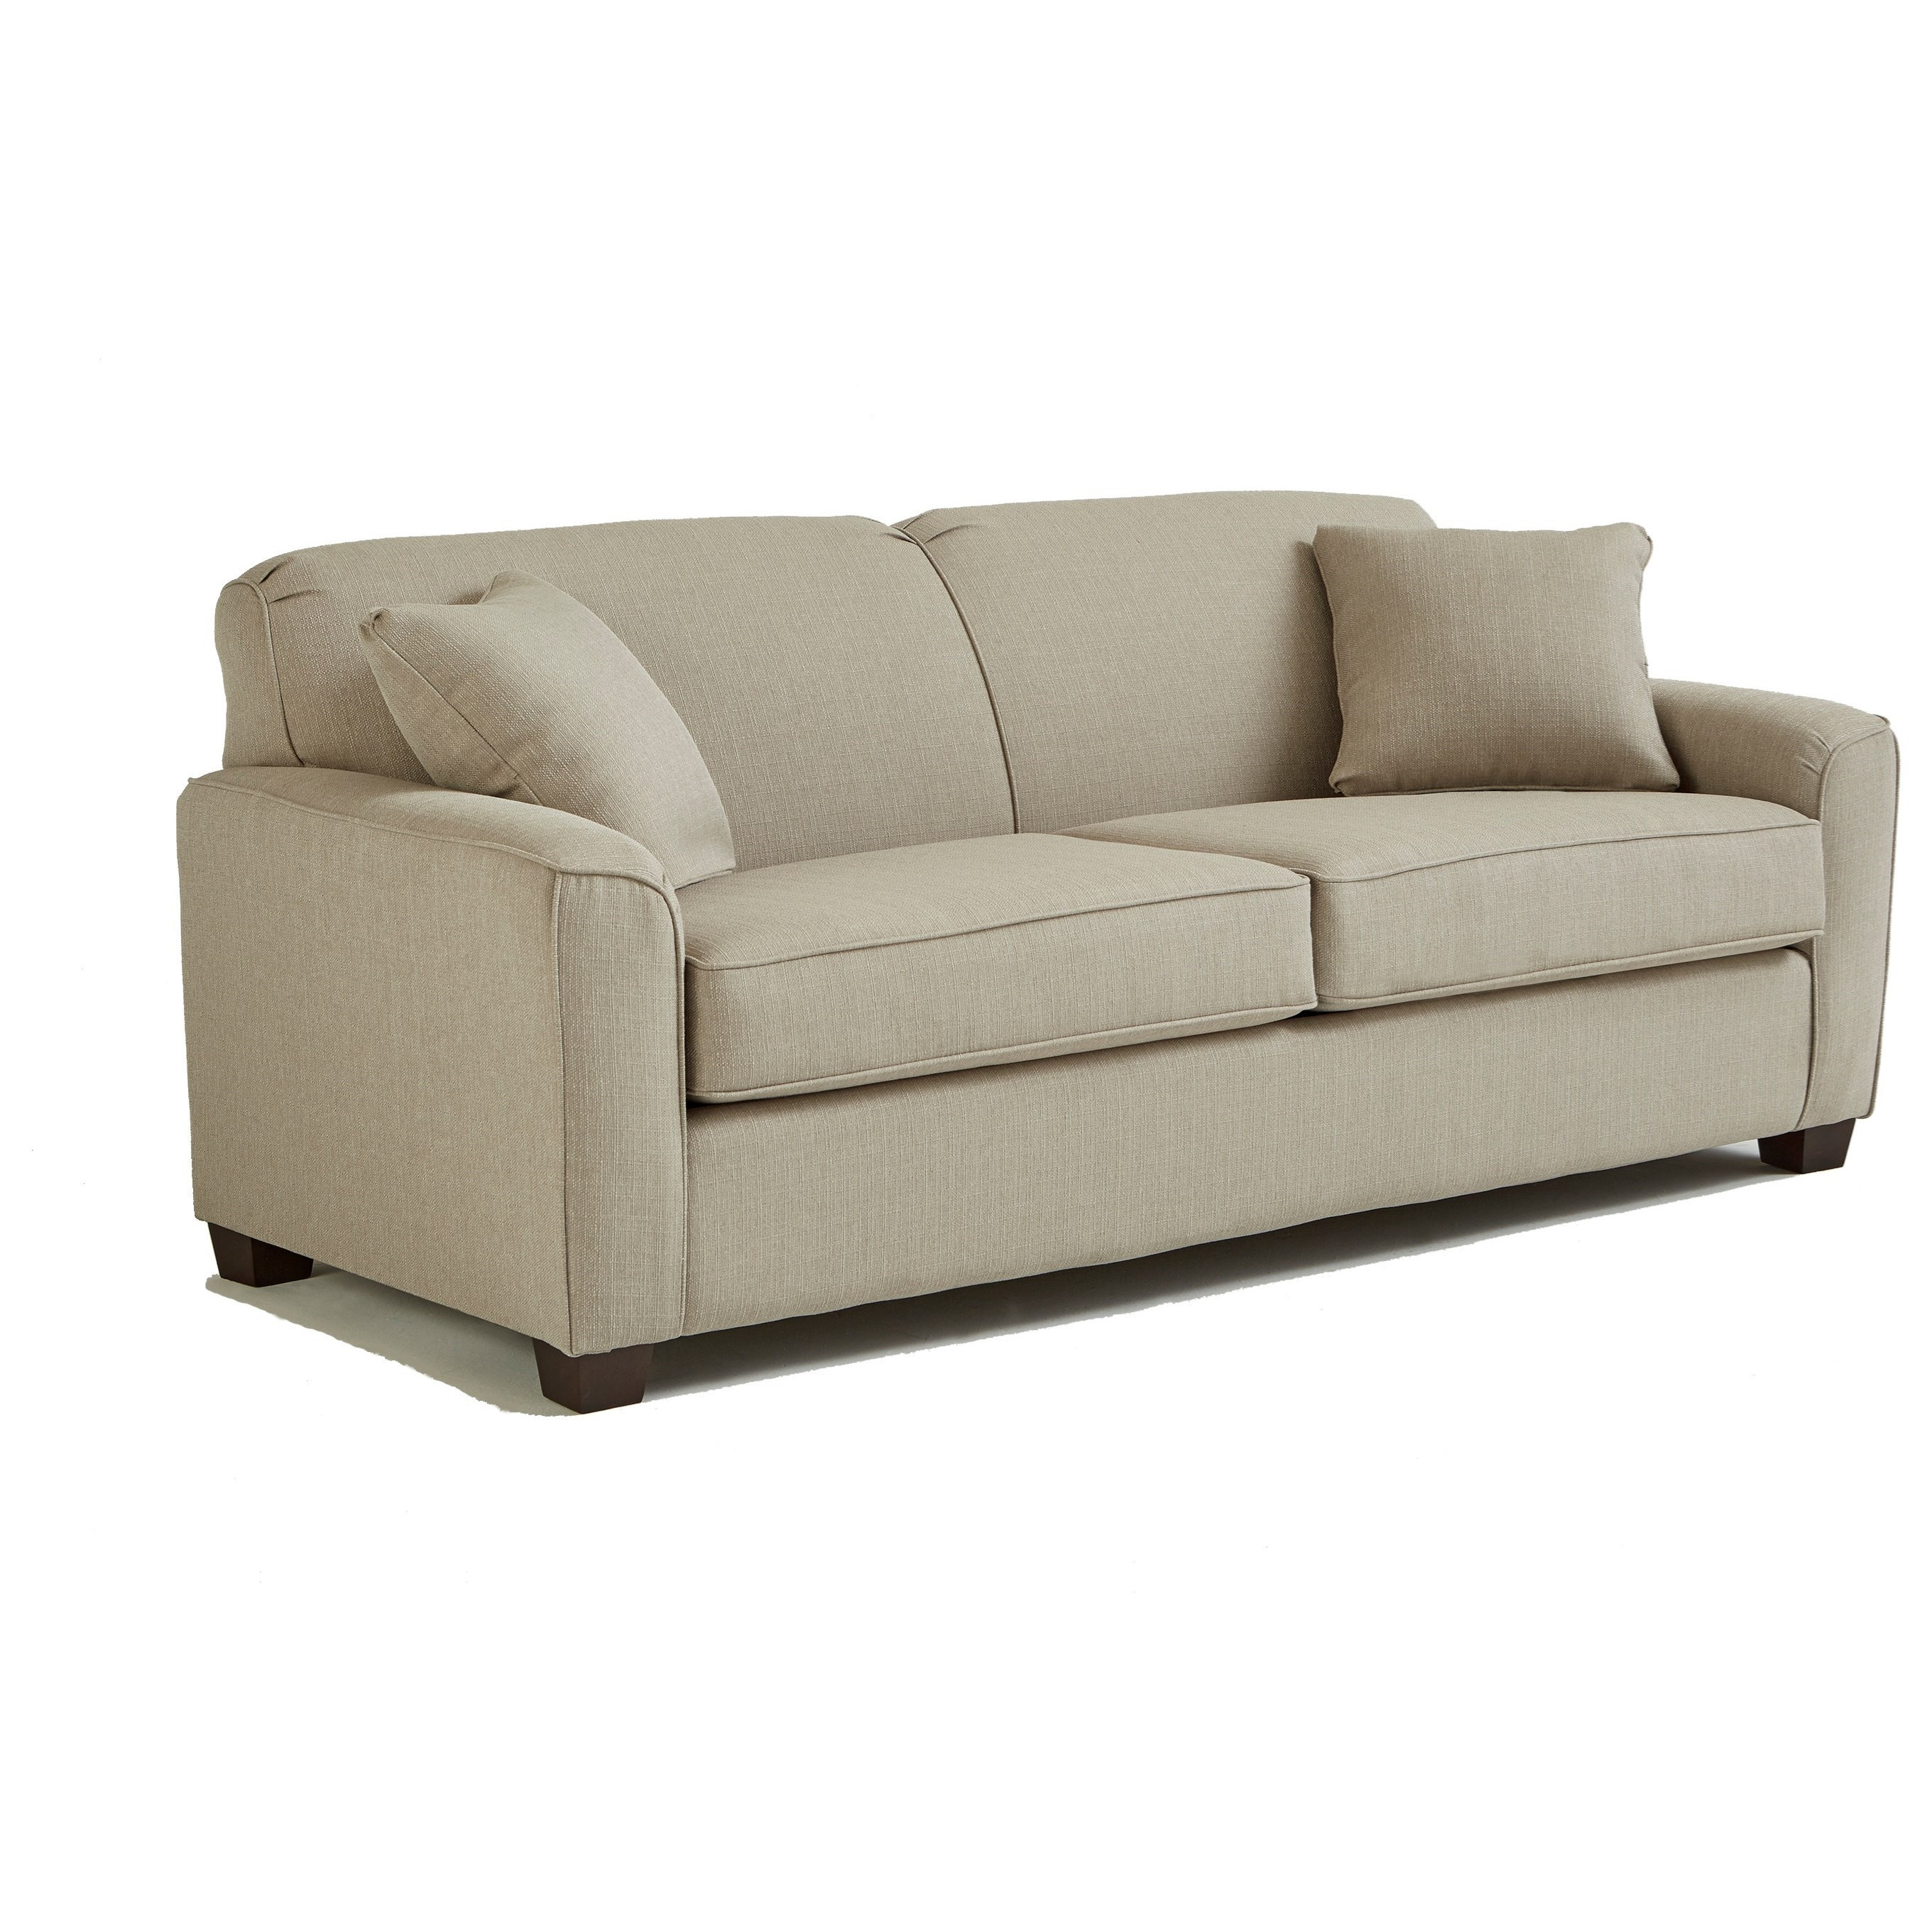 best home furnishings dinah s16aq contemporary queen sofa sleeper rh dunkandbright com